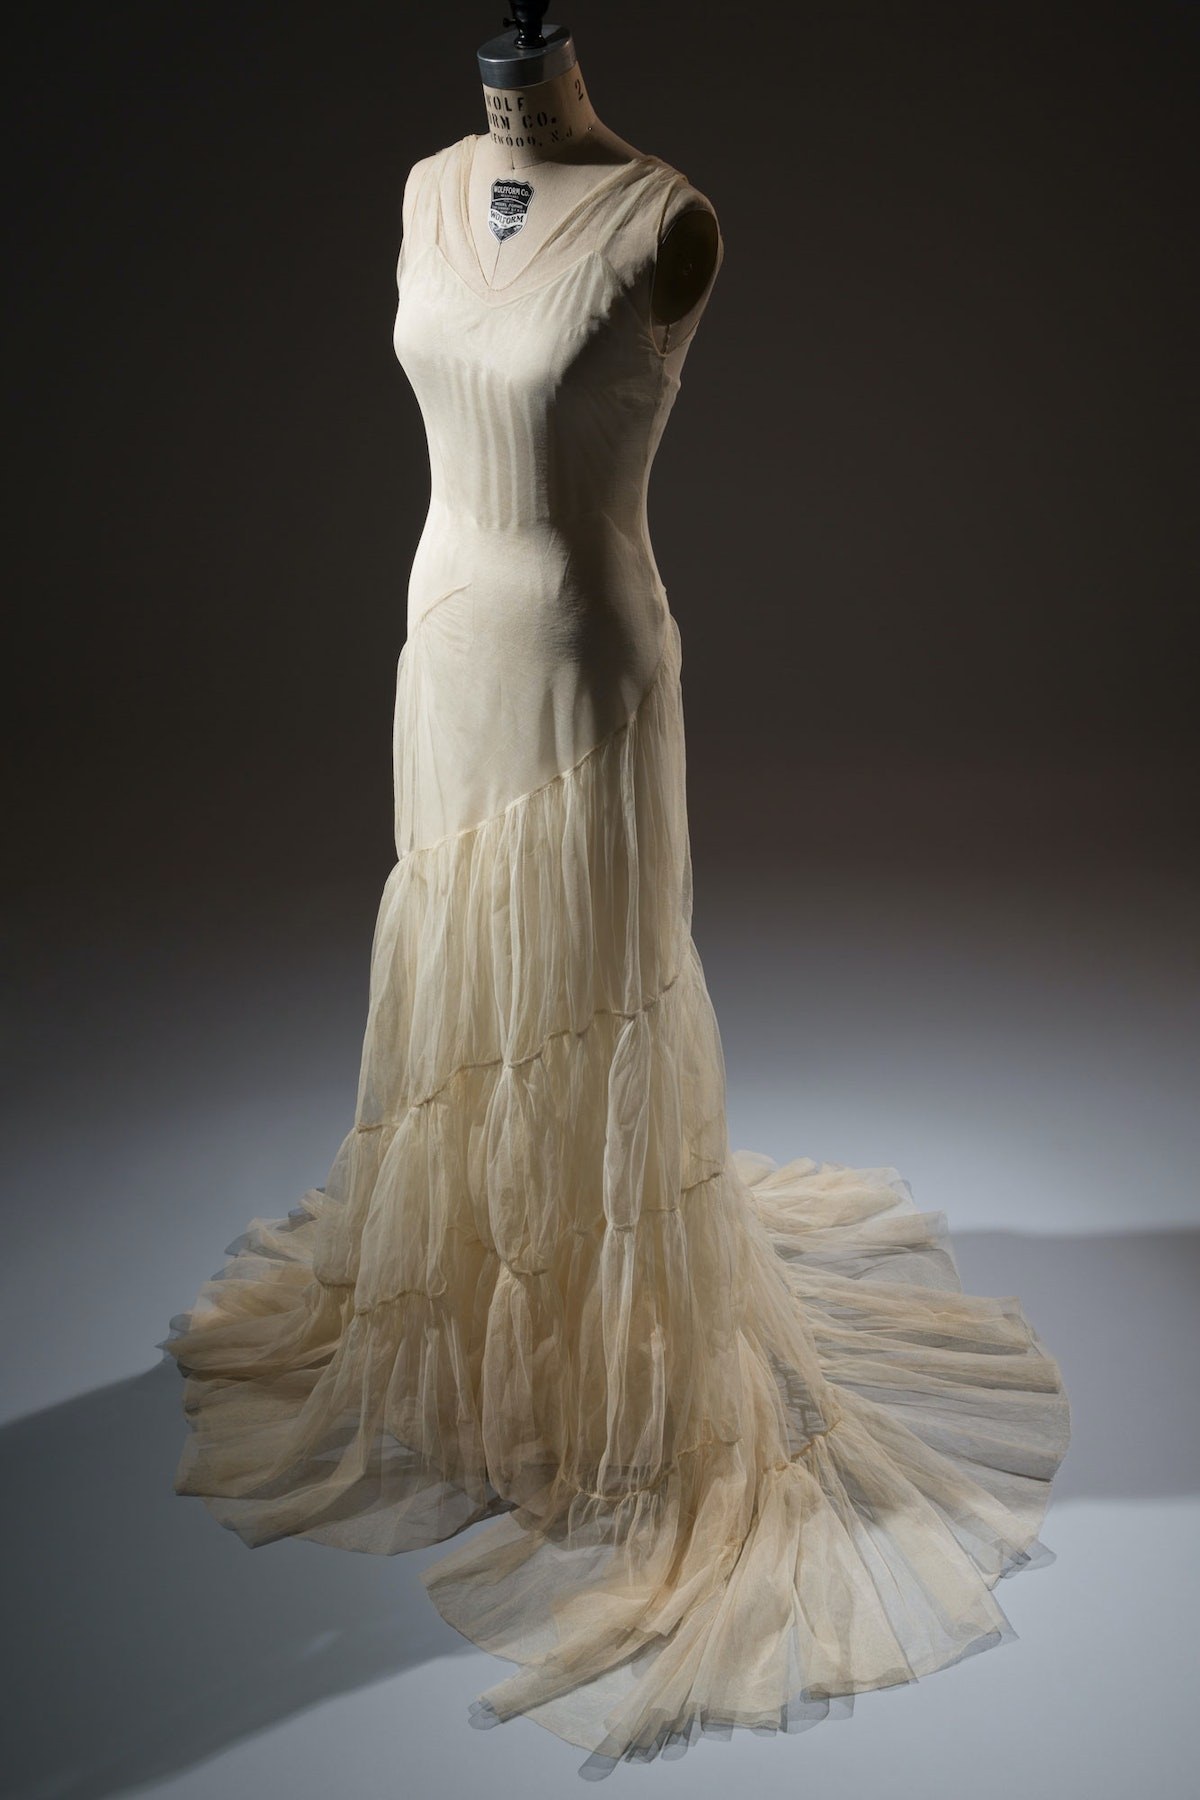 Augustabernard evening gown    Putting a name to this technically rigorous dress took some detective...